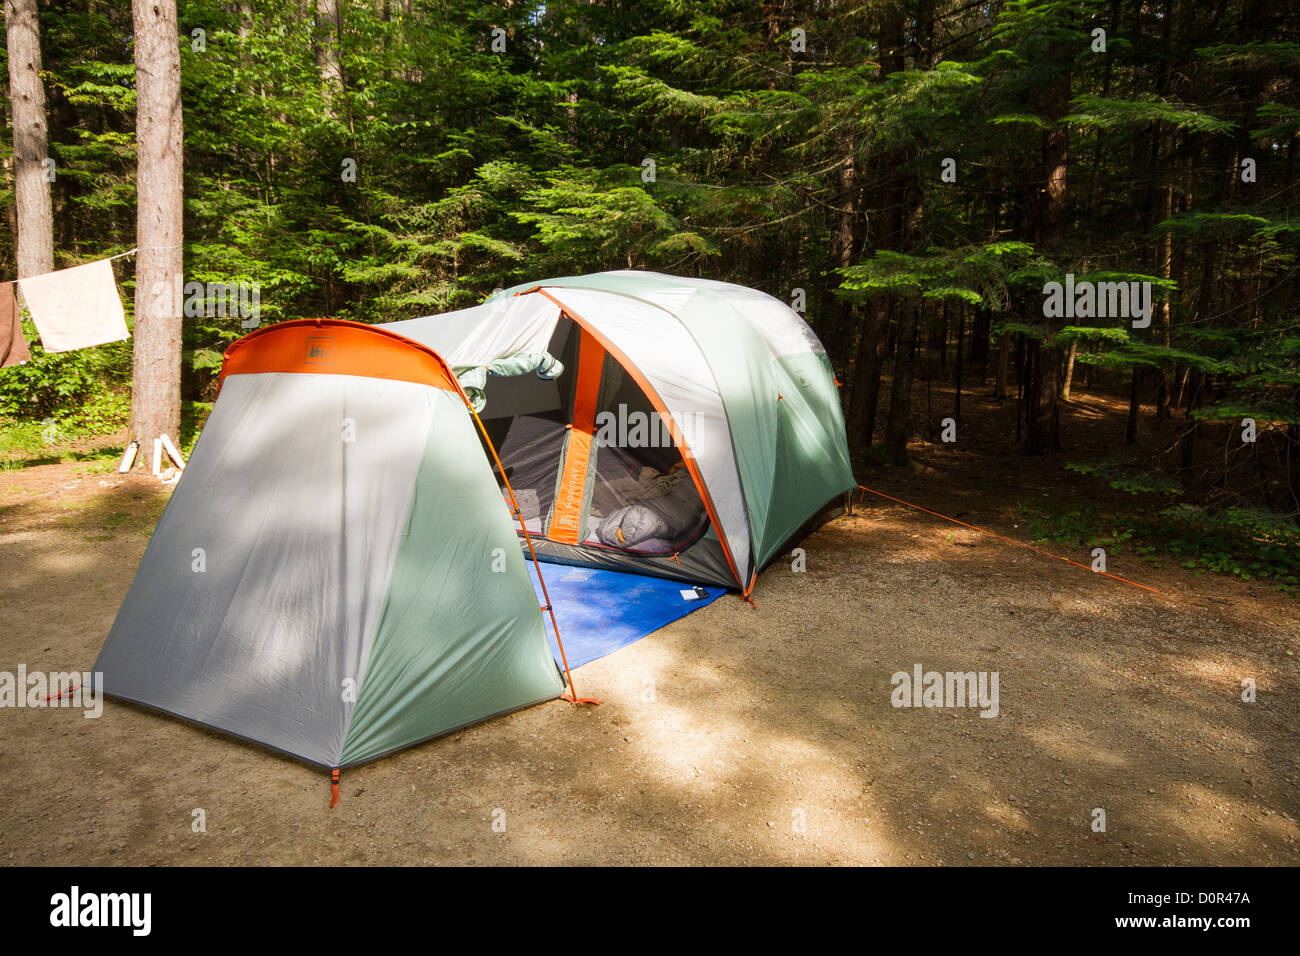 Large 3 person REI Hobitat tent with a